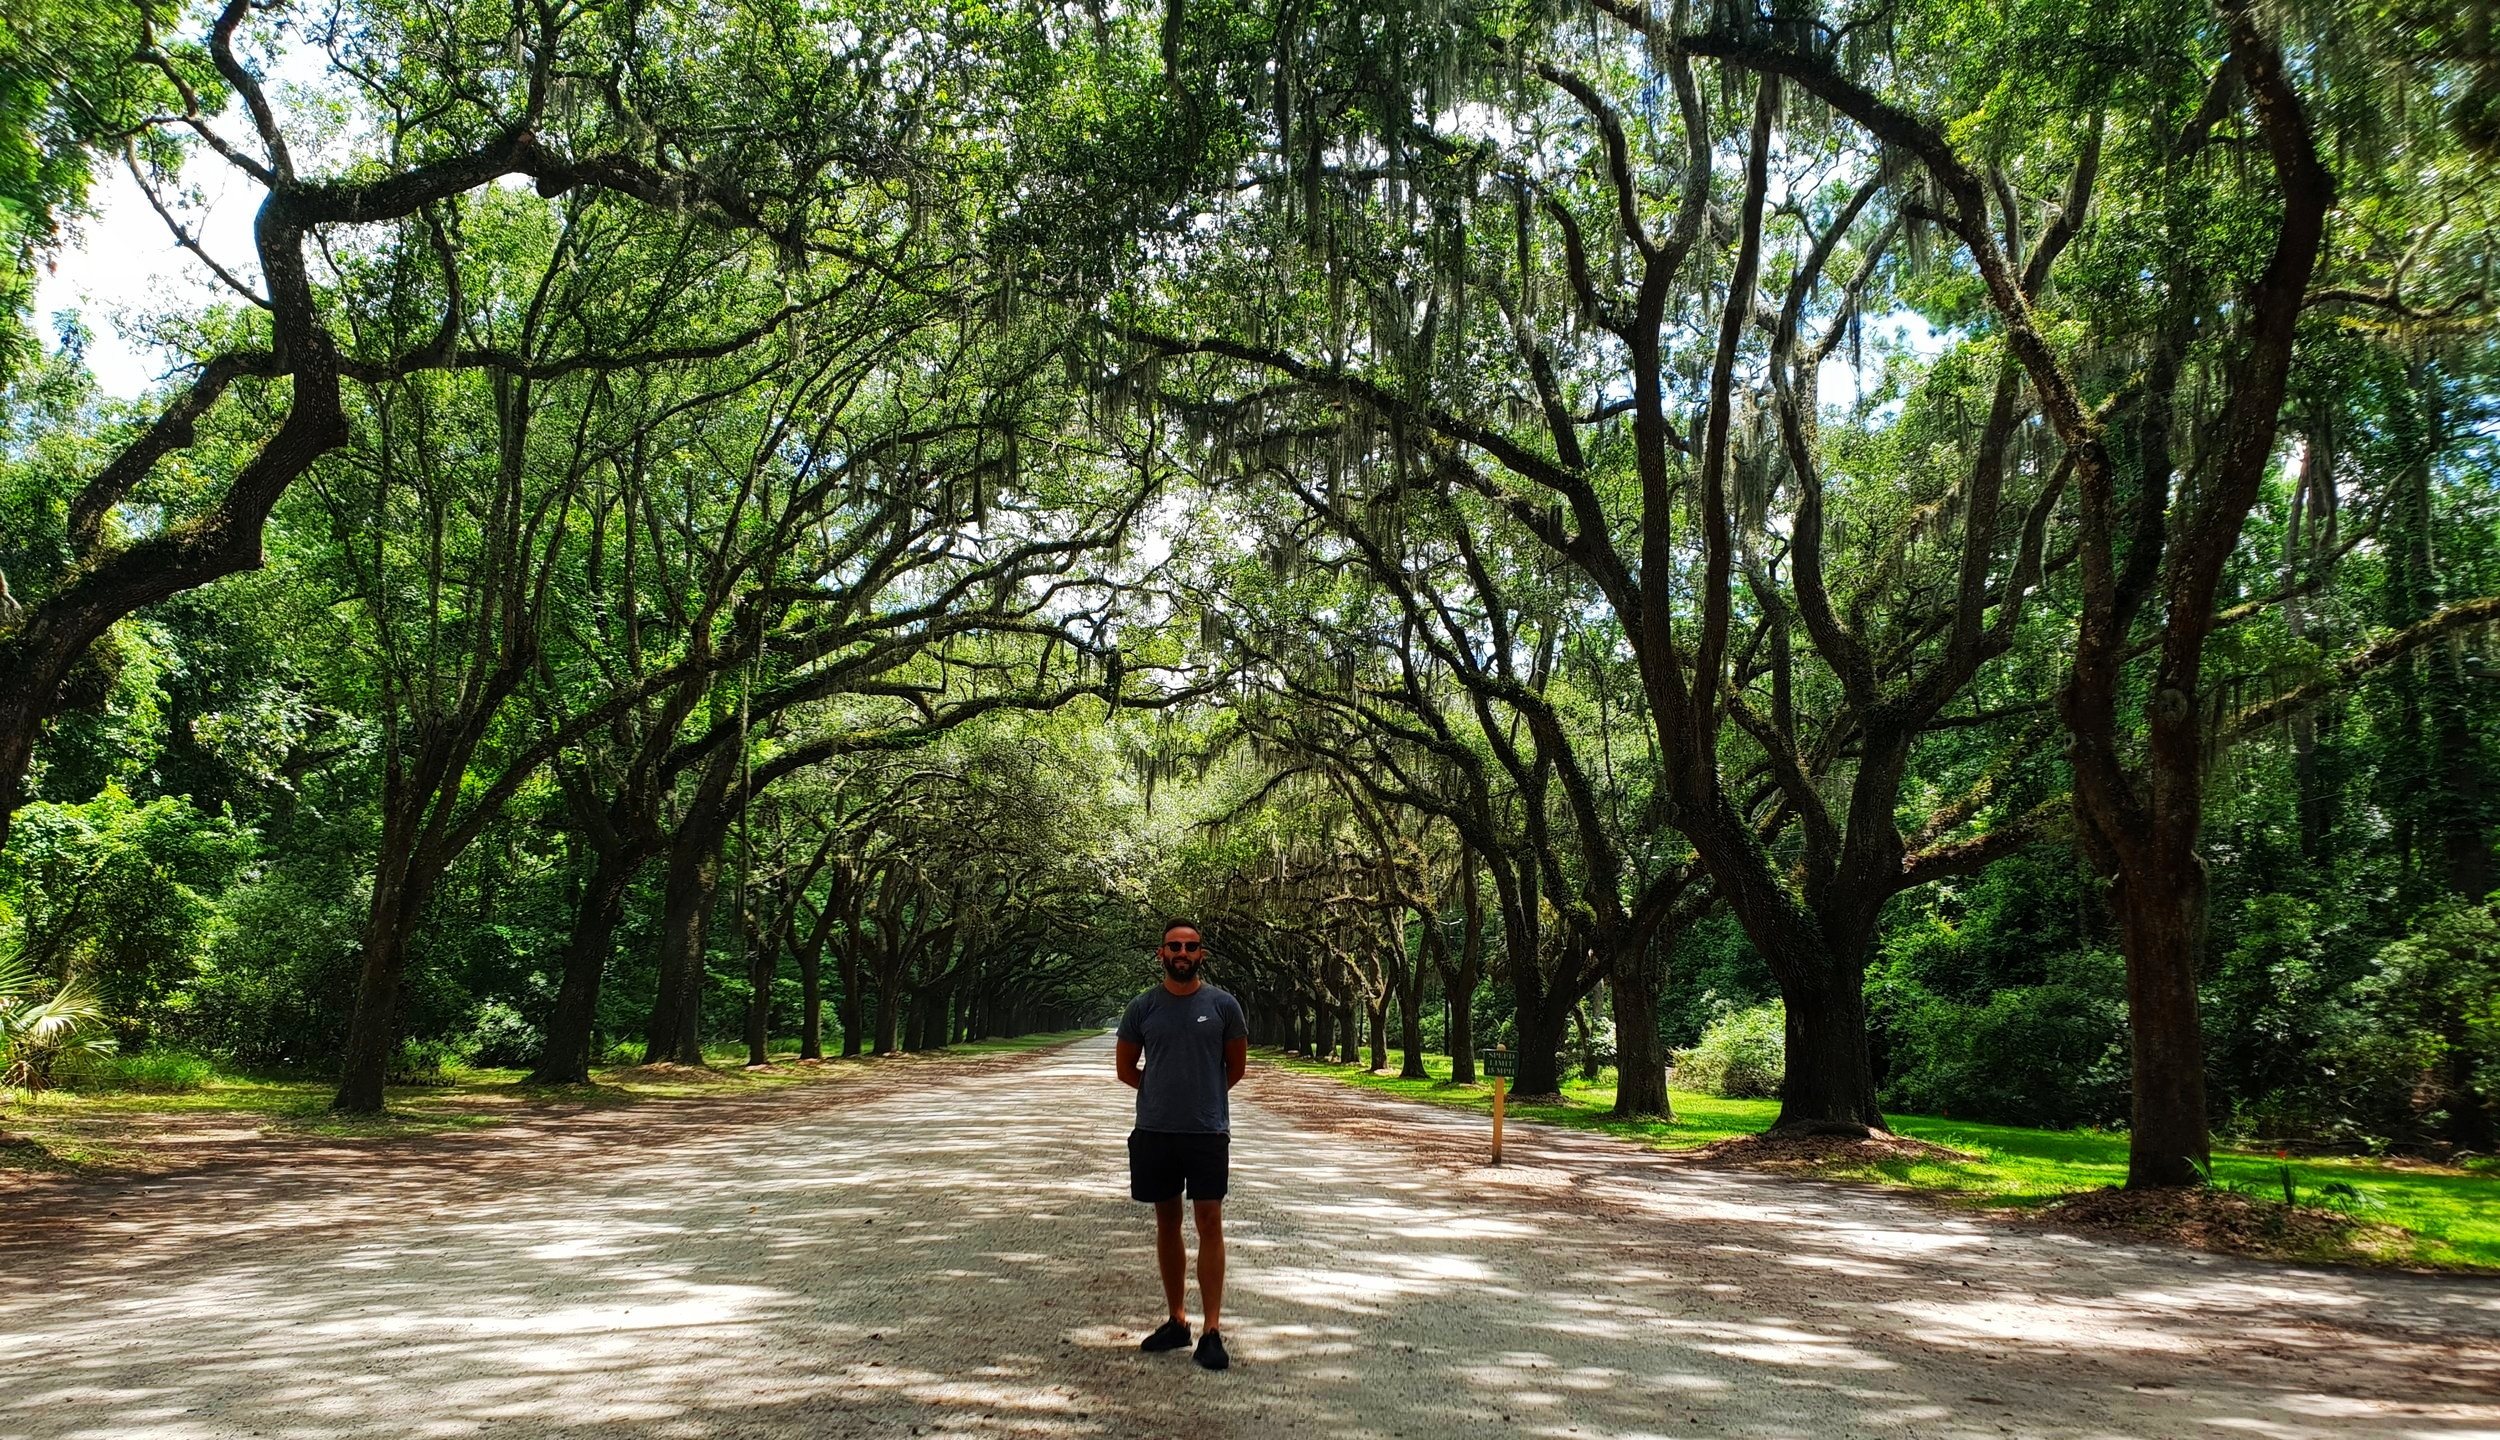 Wormsloe Historic Park, Savannah. My narcissistic desire to include myself in the photo has essentially ruined the entire composition of it, by blocking the illusion of the road continuing infinitely into the distance. But I'm not changing it.